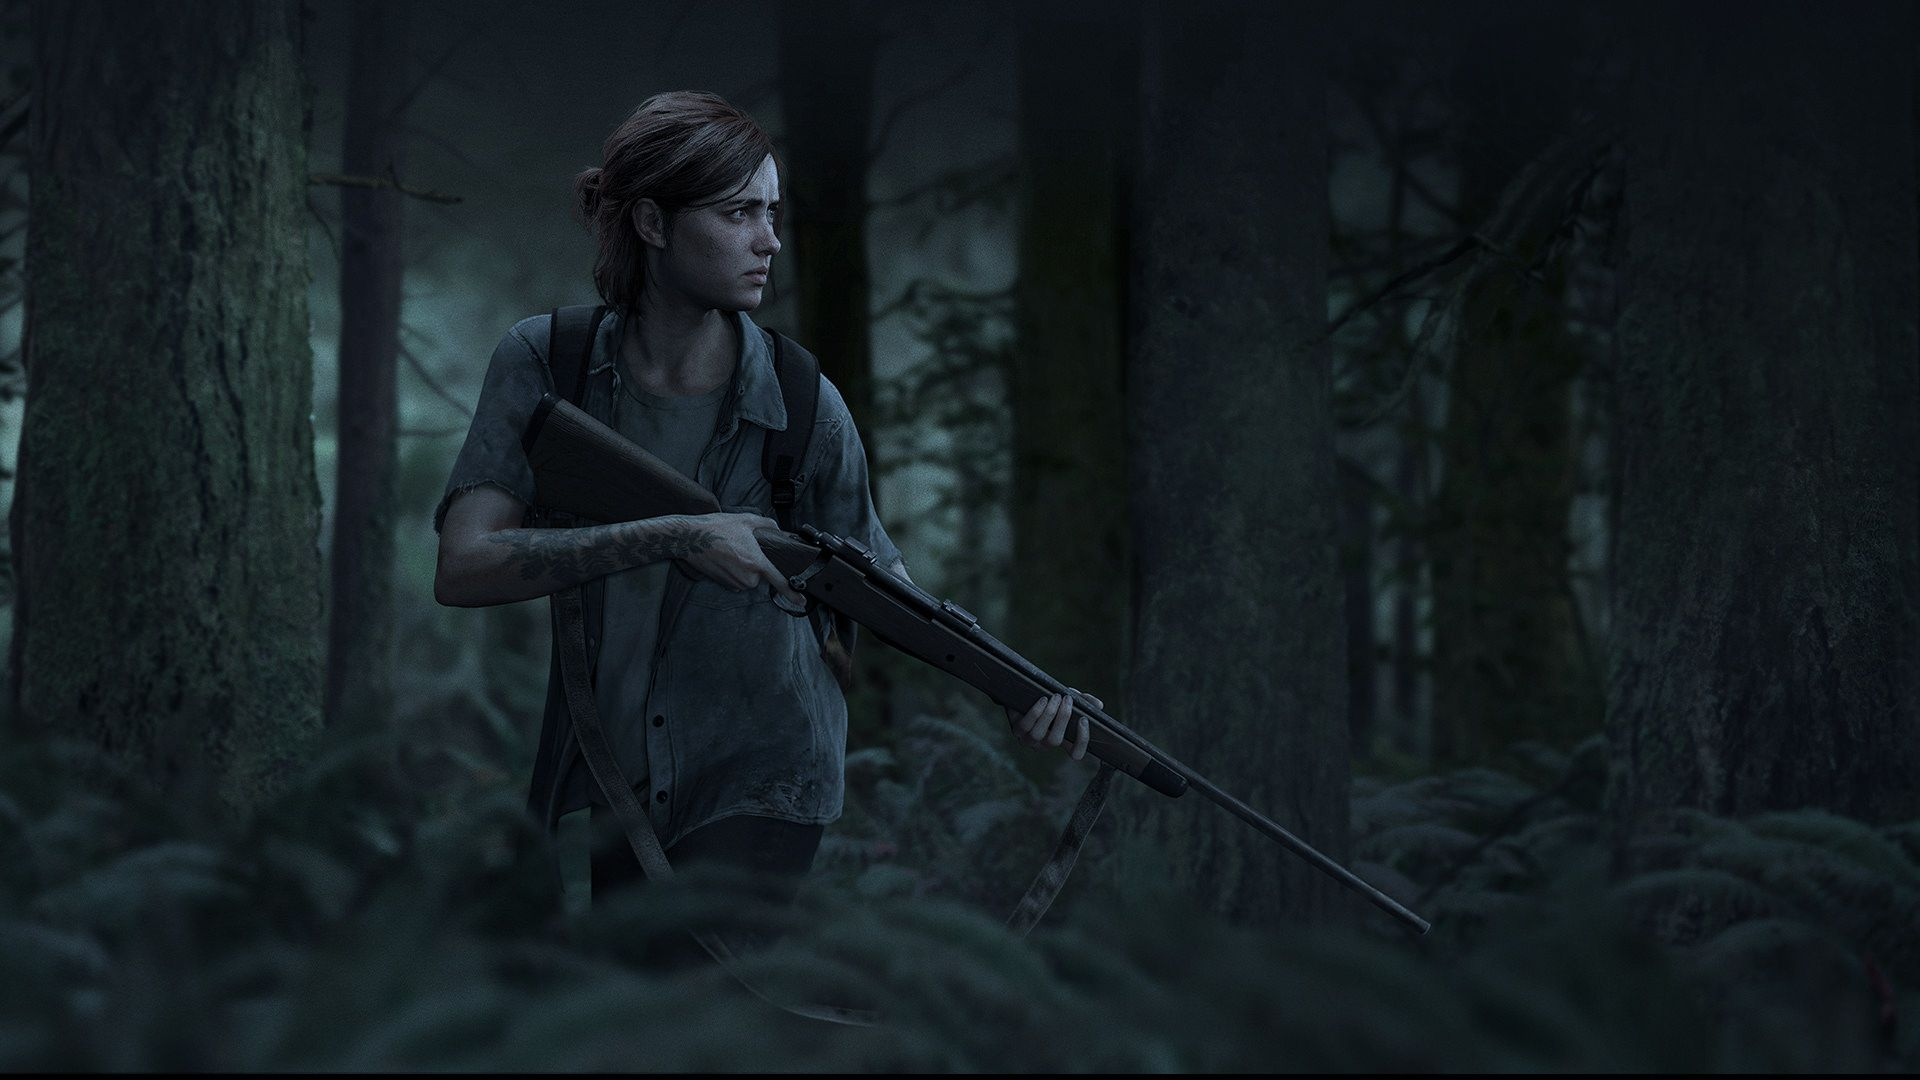 The Last of Us 2 Wallpapers   Top The Last of Us 2 1920x1080